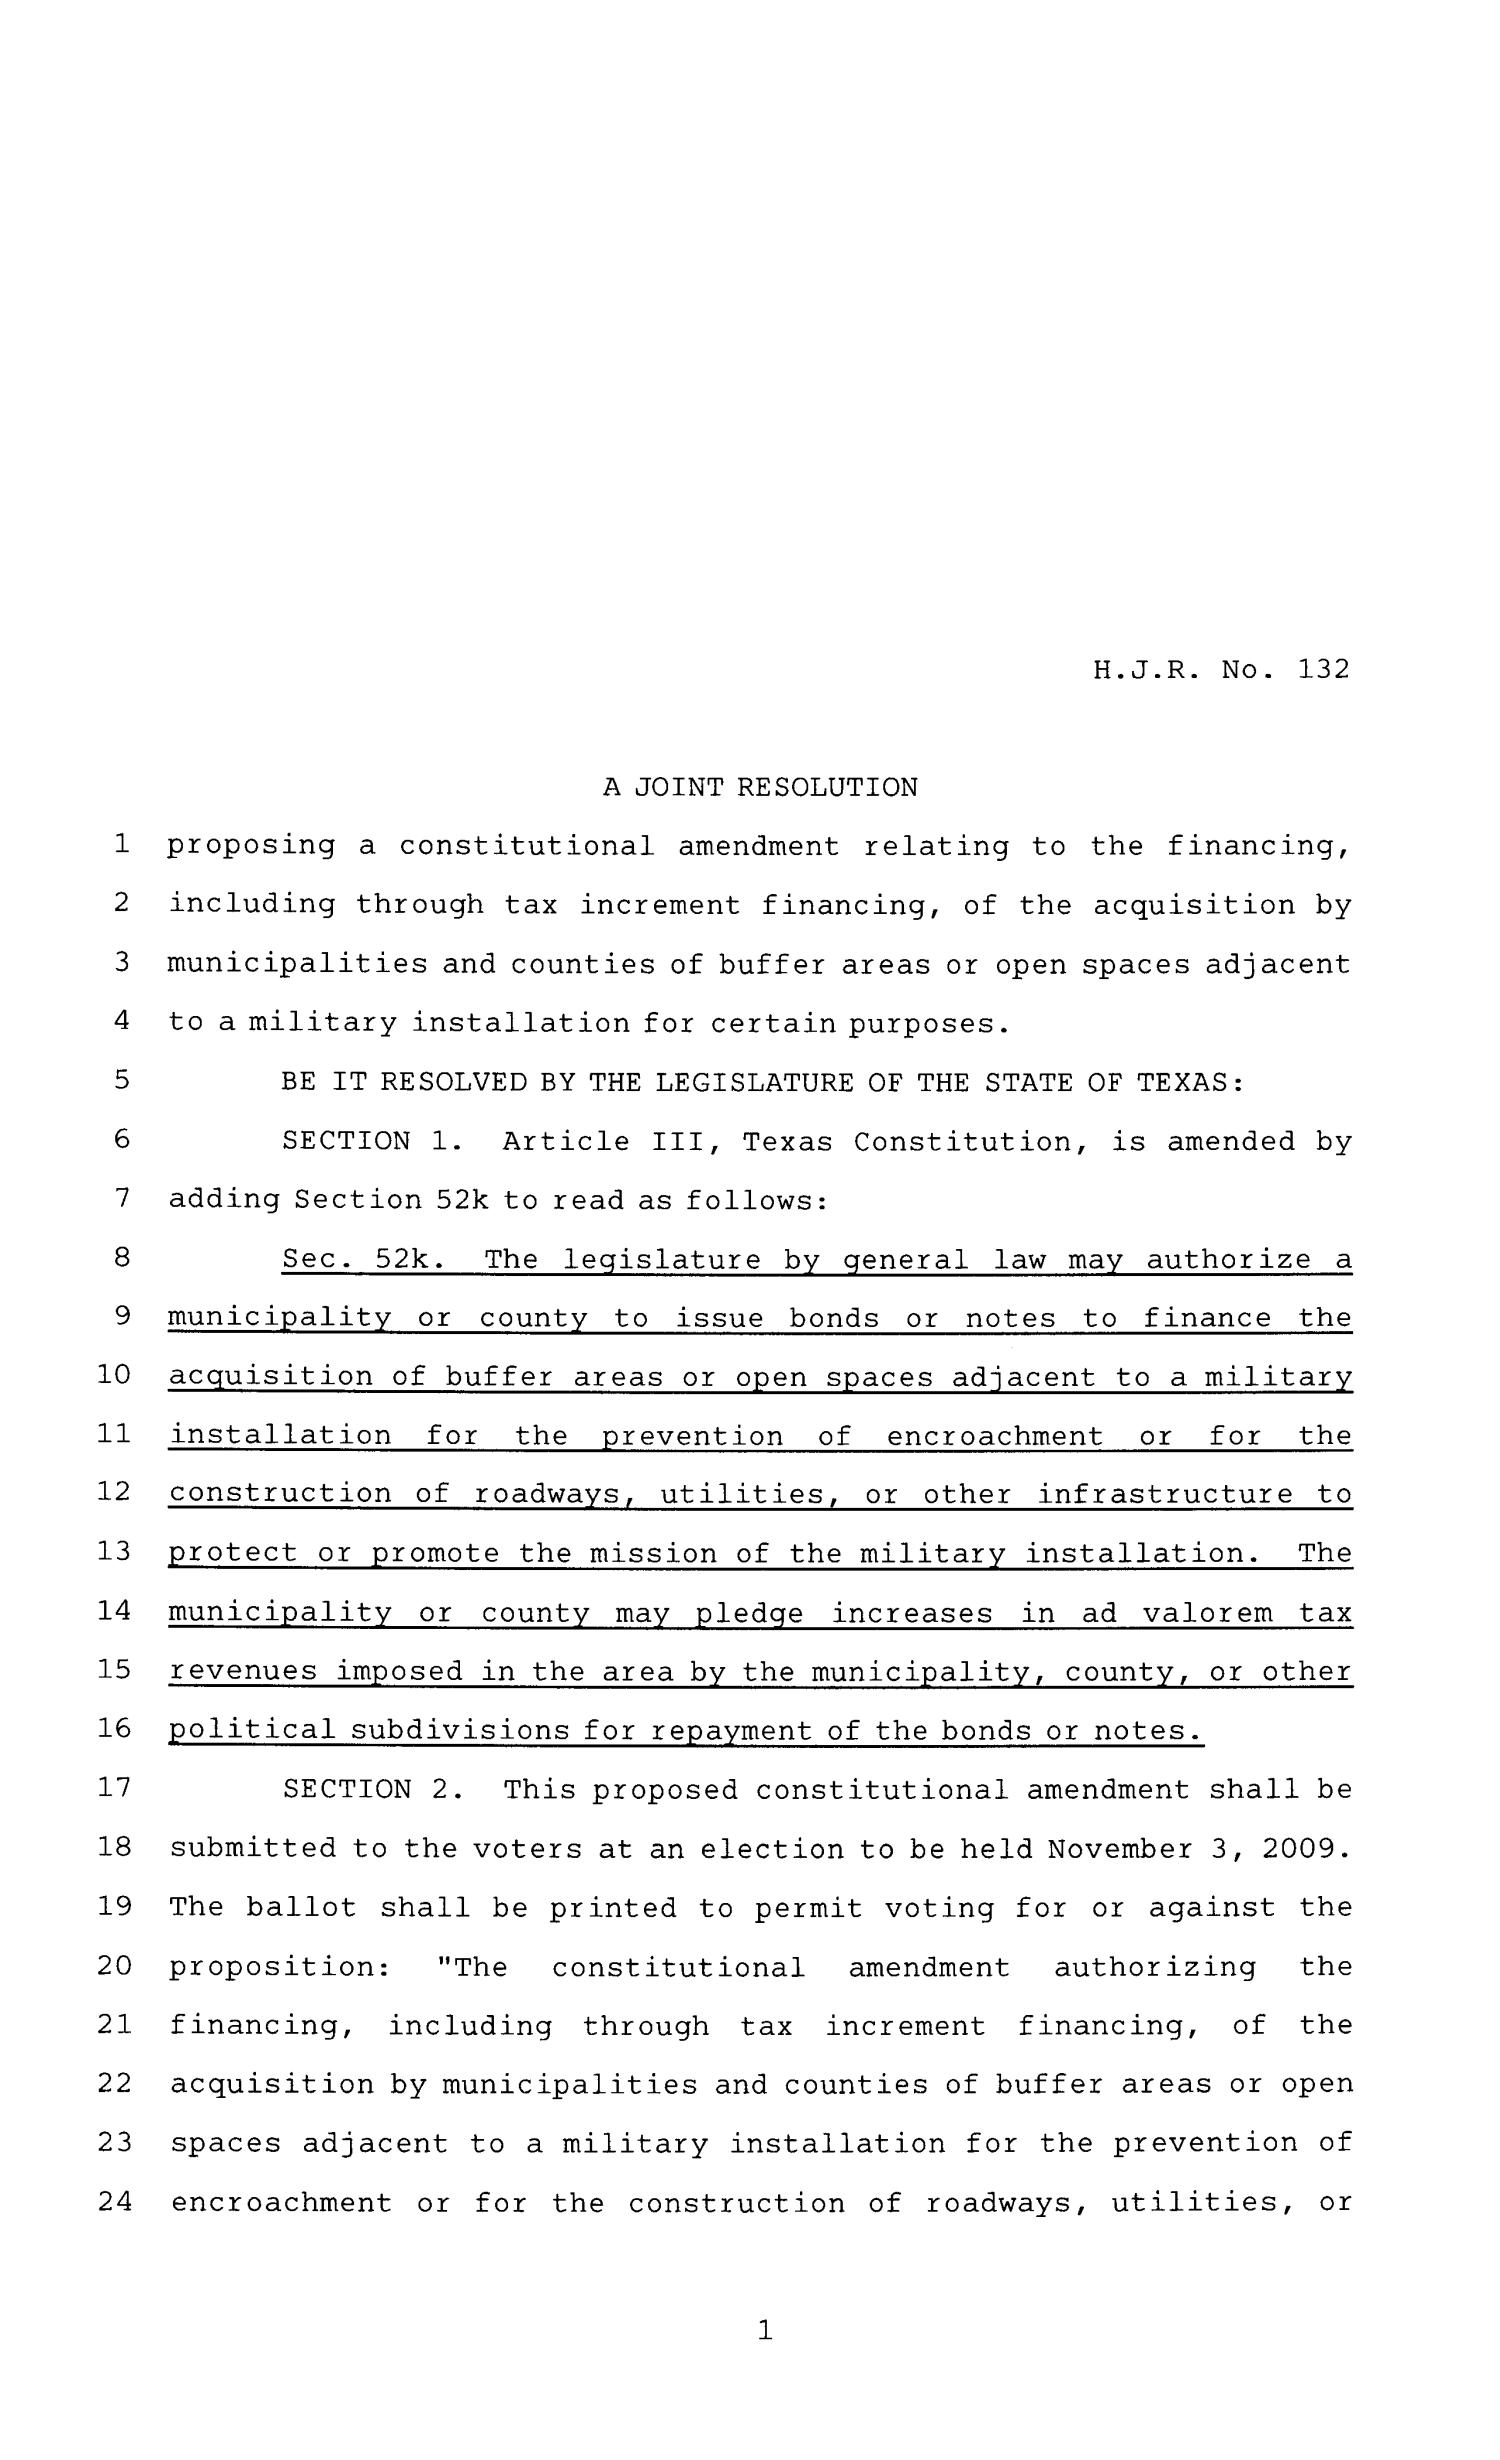 81st Texas Legislature, House Joint Resolution, House Bill 132                                                                                                      [Sequence #]: 1 of 3